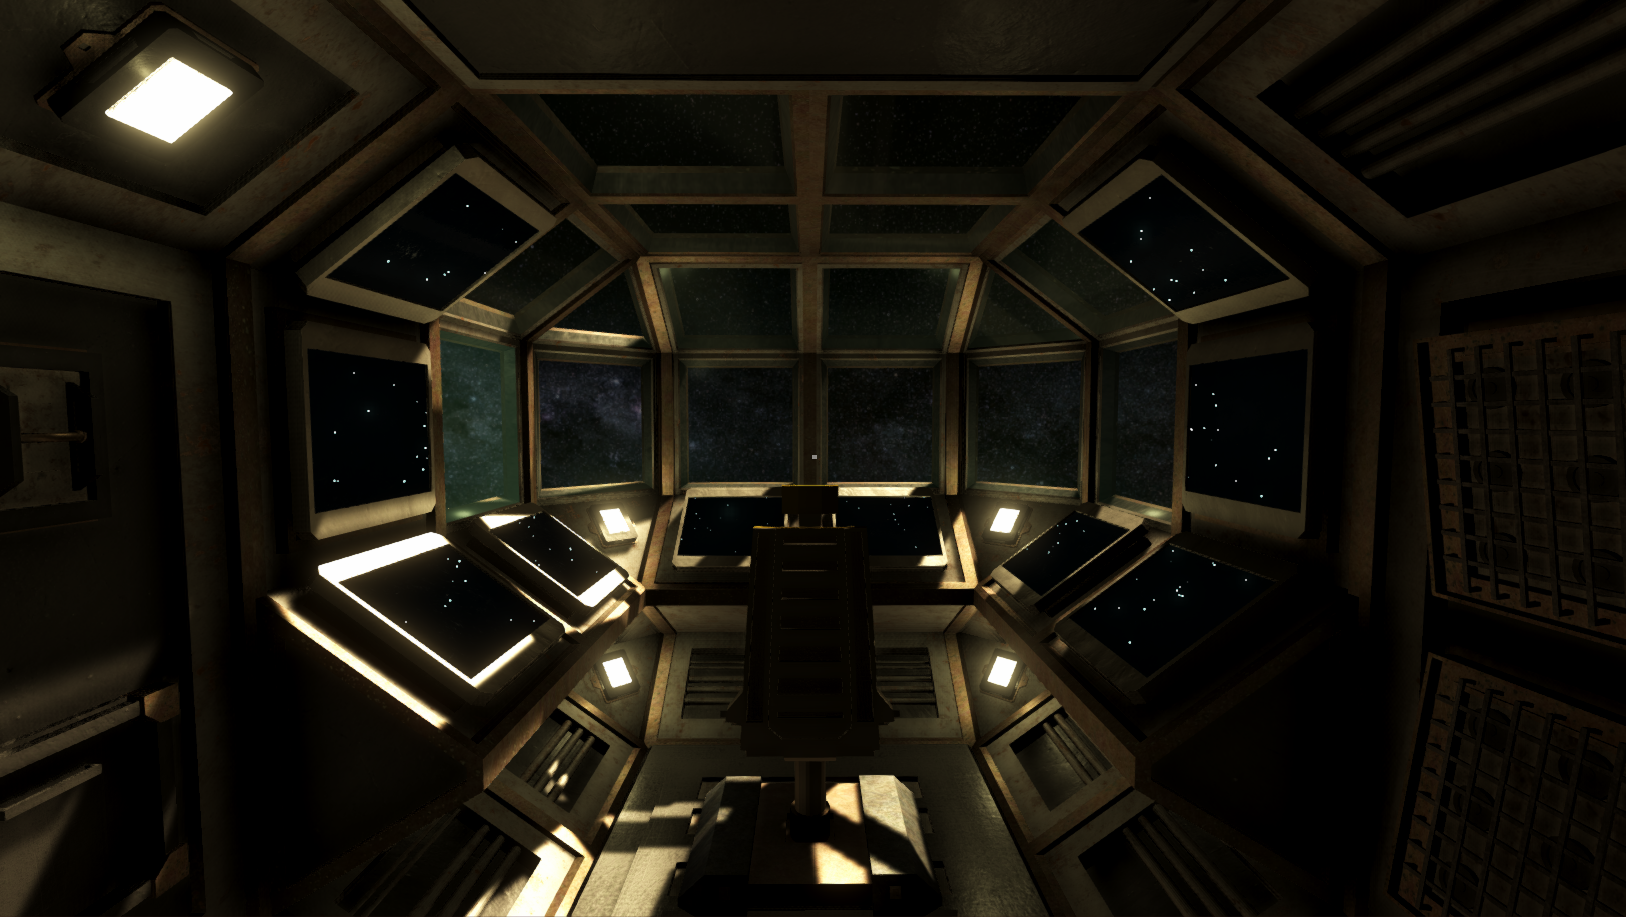 A Spaceship in Space